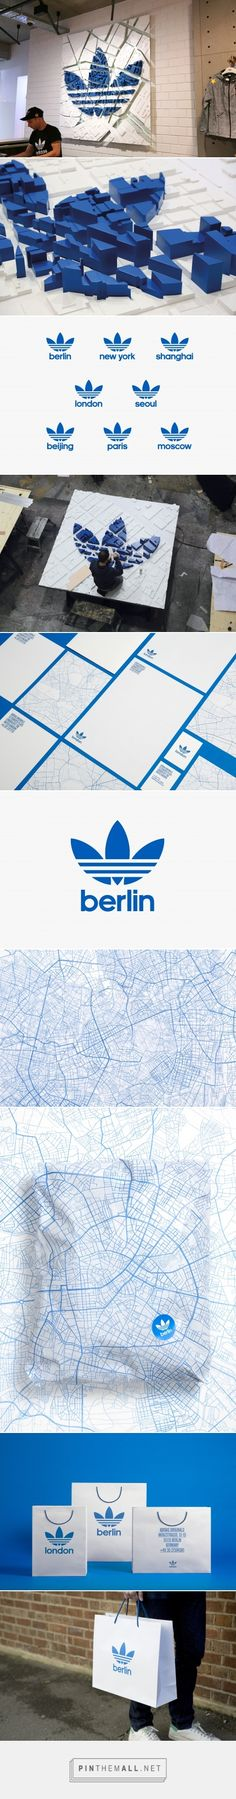 Adidas Originals Branding by Here Design | Fivestar Branding – Design and Branding Agency & Inspiration Gallery                                                                                                                                                      Más